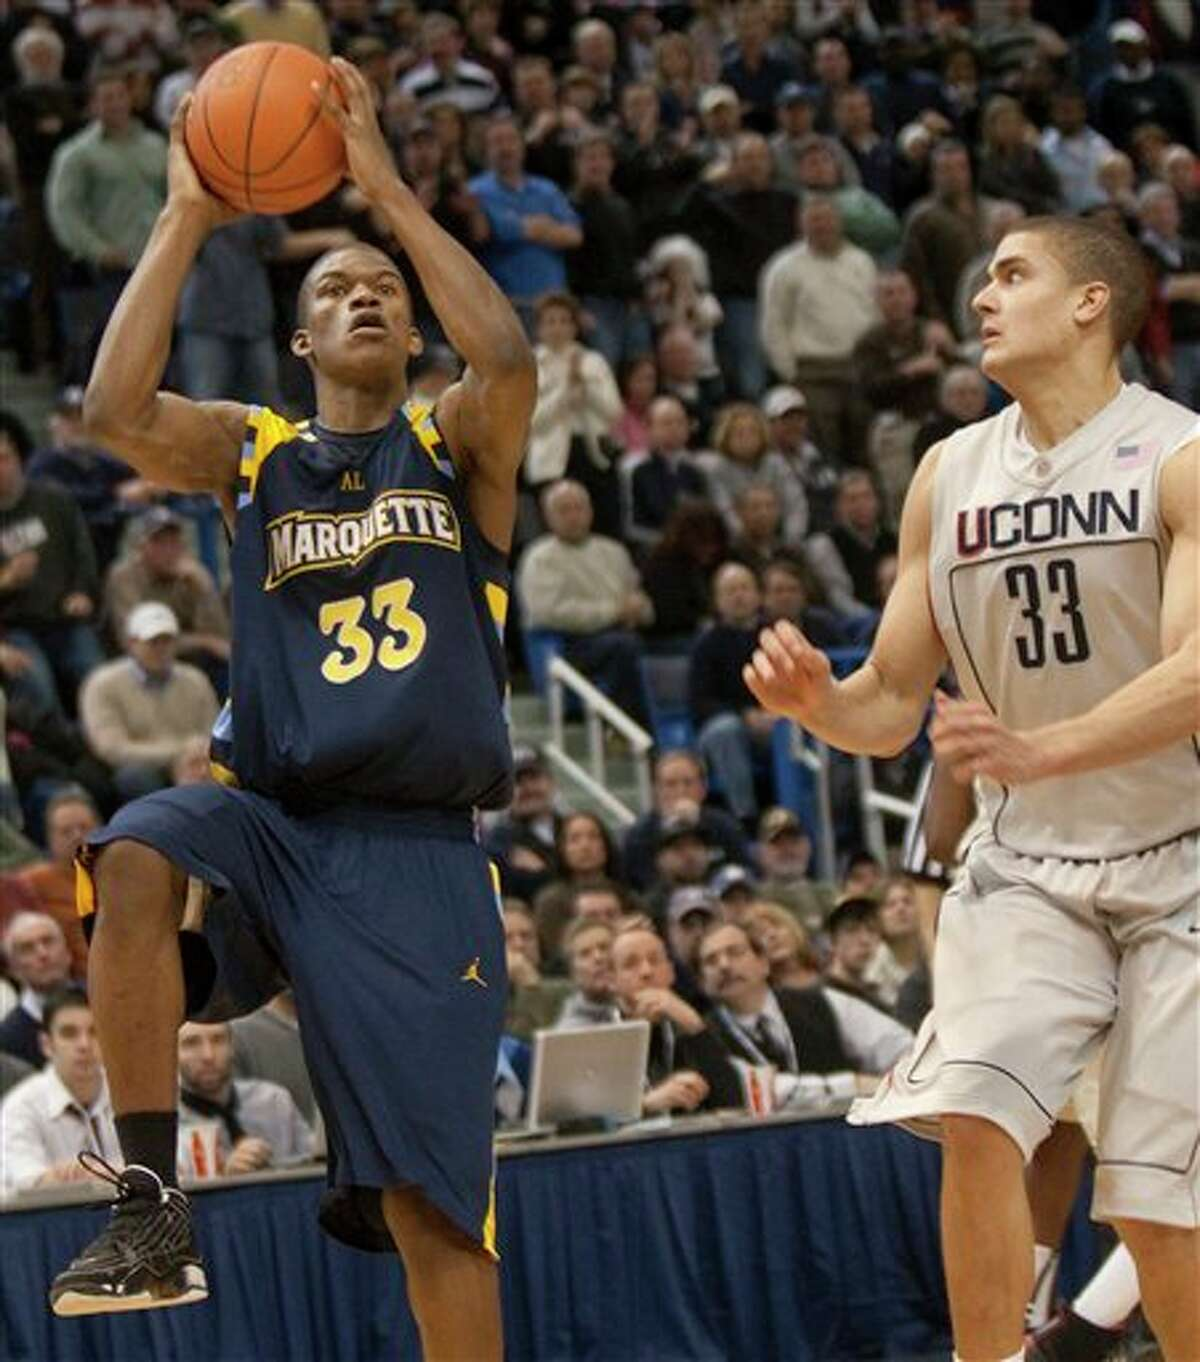 Marquette's Jimmy Butler, left, shoots the game-winning basket as Connecticut's Gavin Edwards, right, defends during the closing seconds of the second half of Marquette's 70-68 win in an NCAA college basketball game in Hartford, Conn., on Saturday, Jan. 30, 2010.